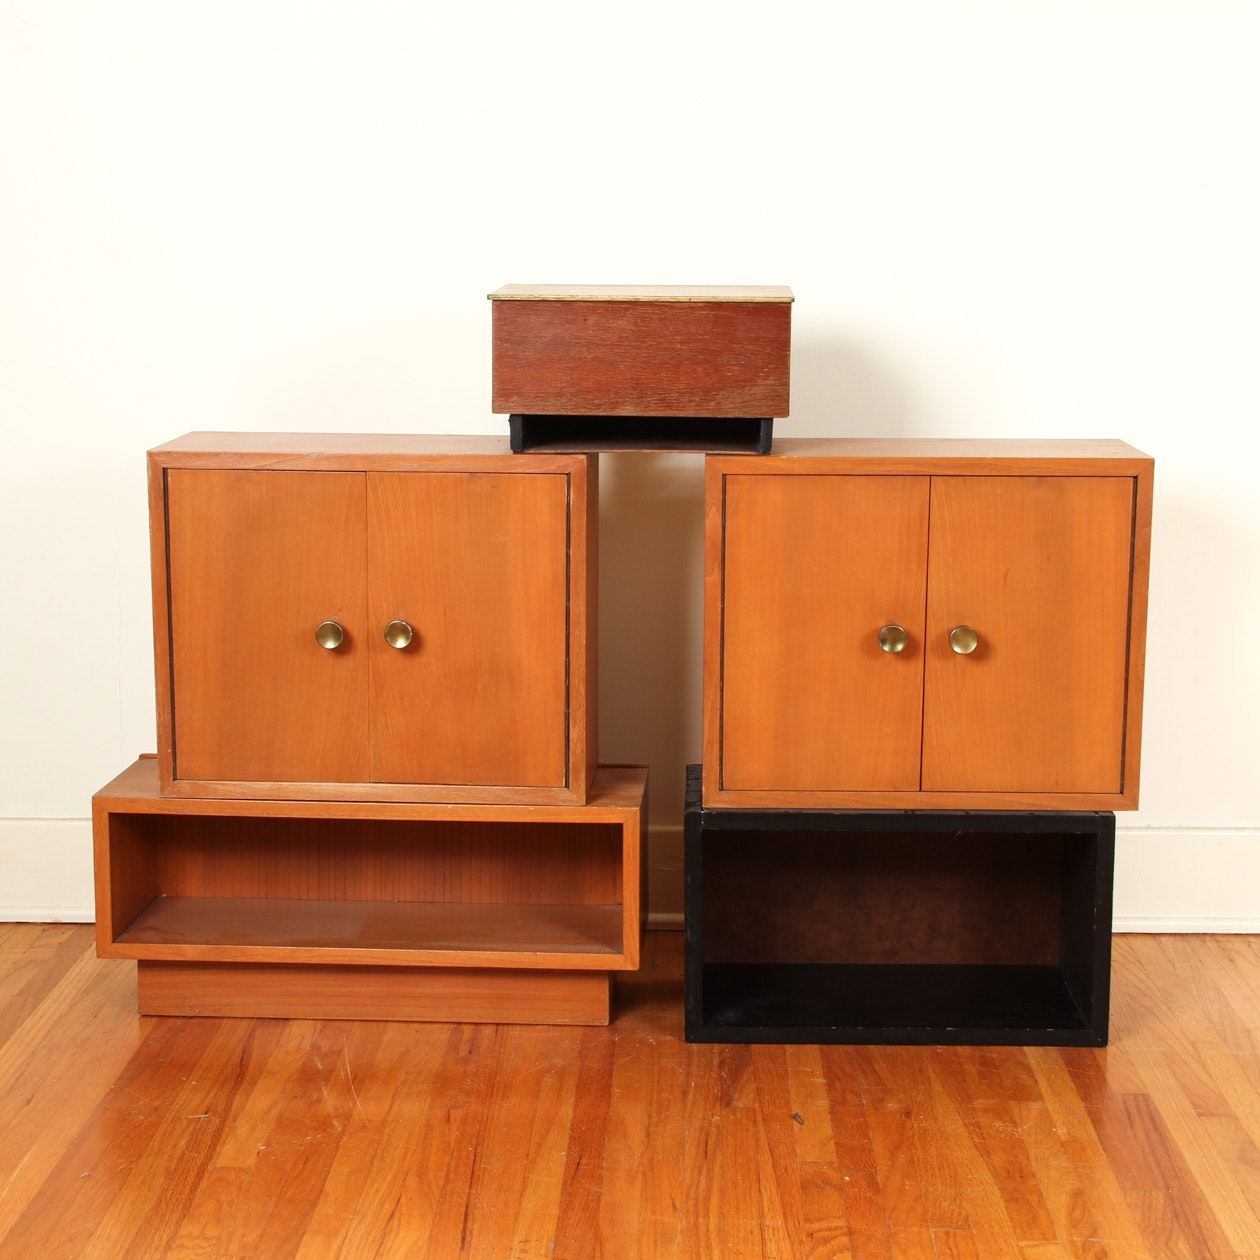 Group of Mid Century Modern Cabinets and Shelves